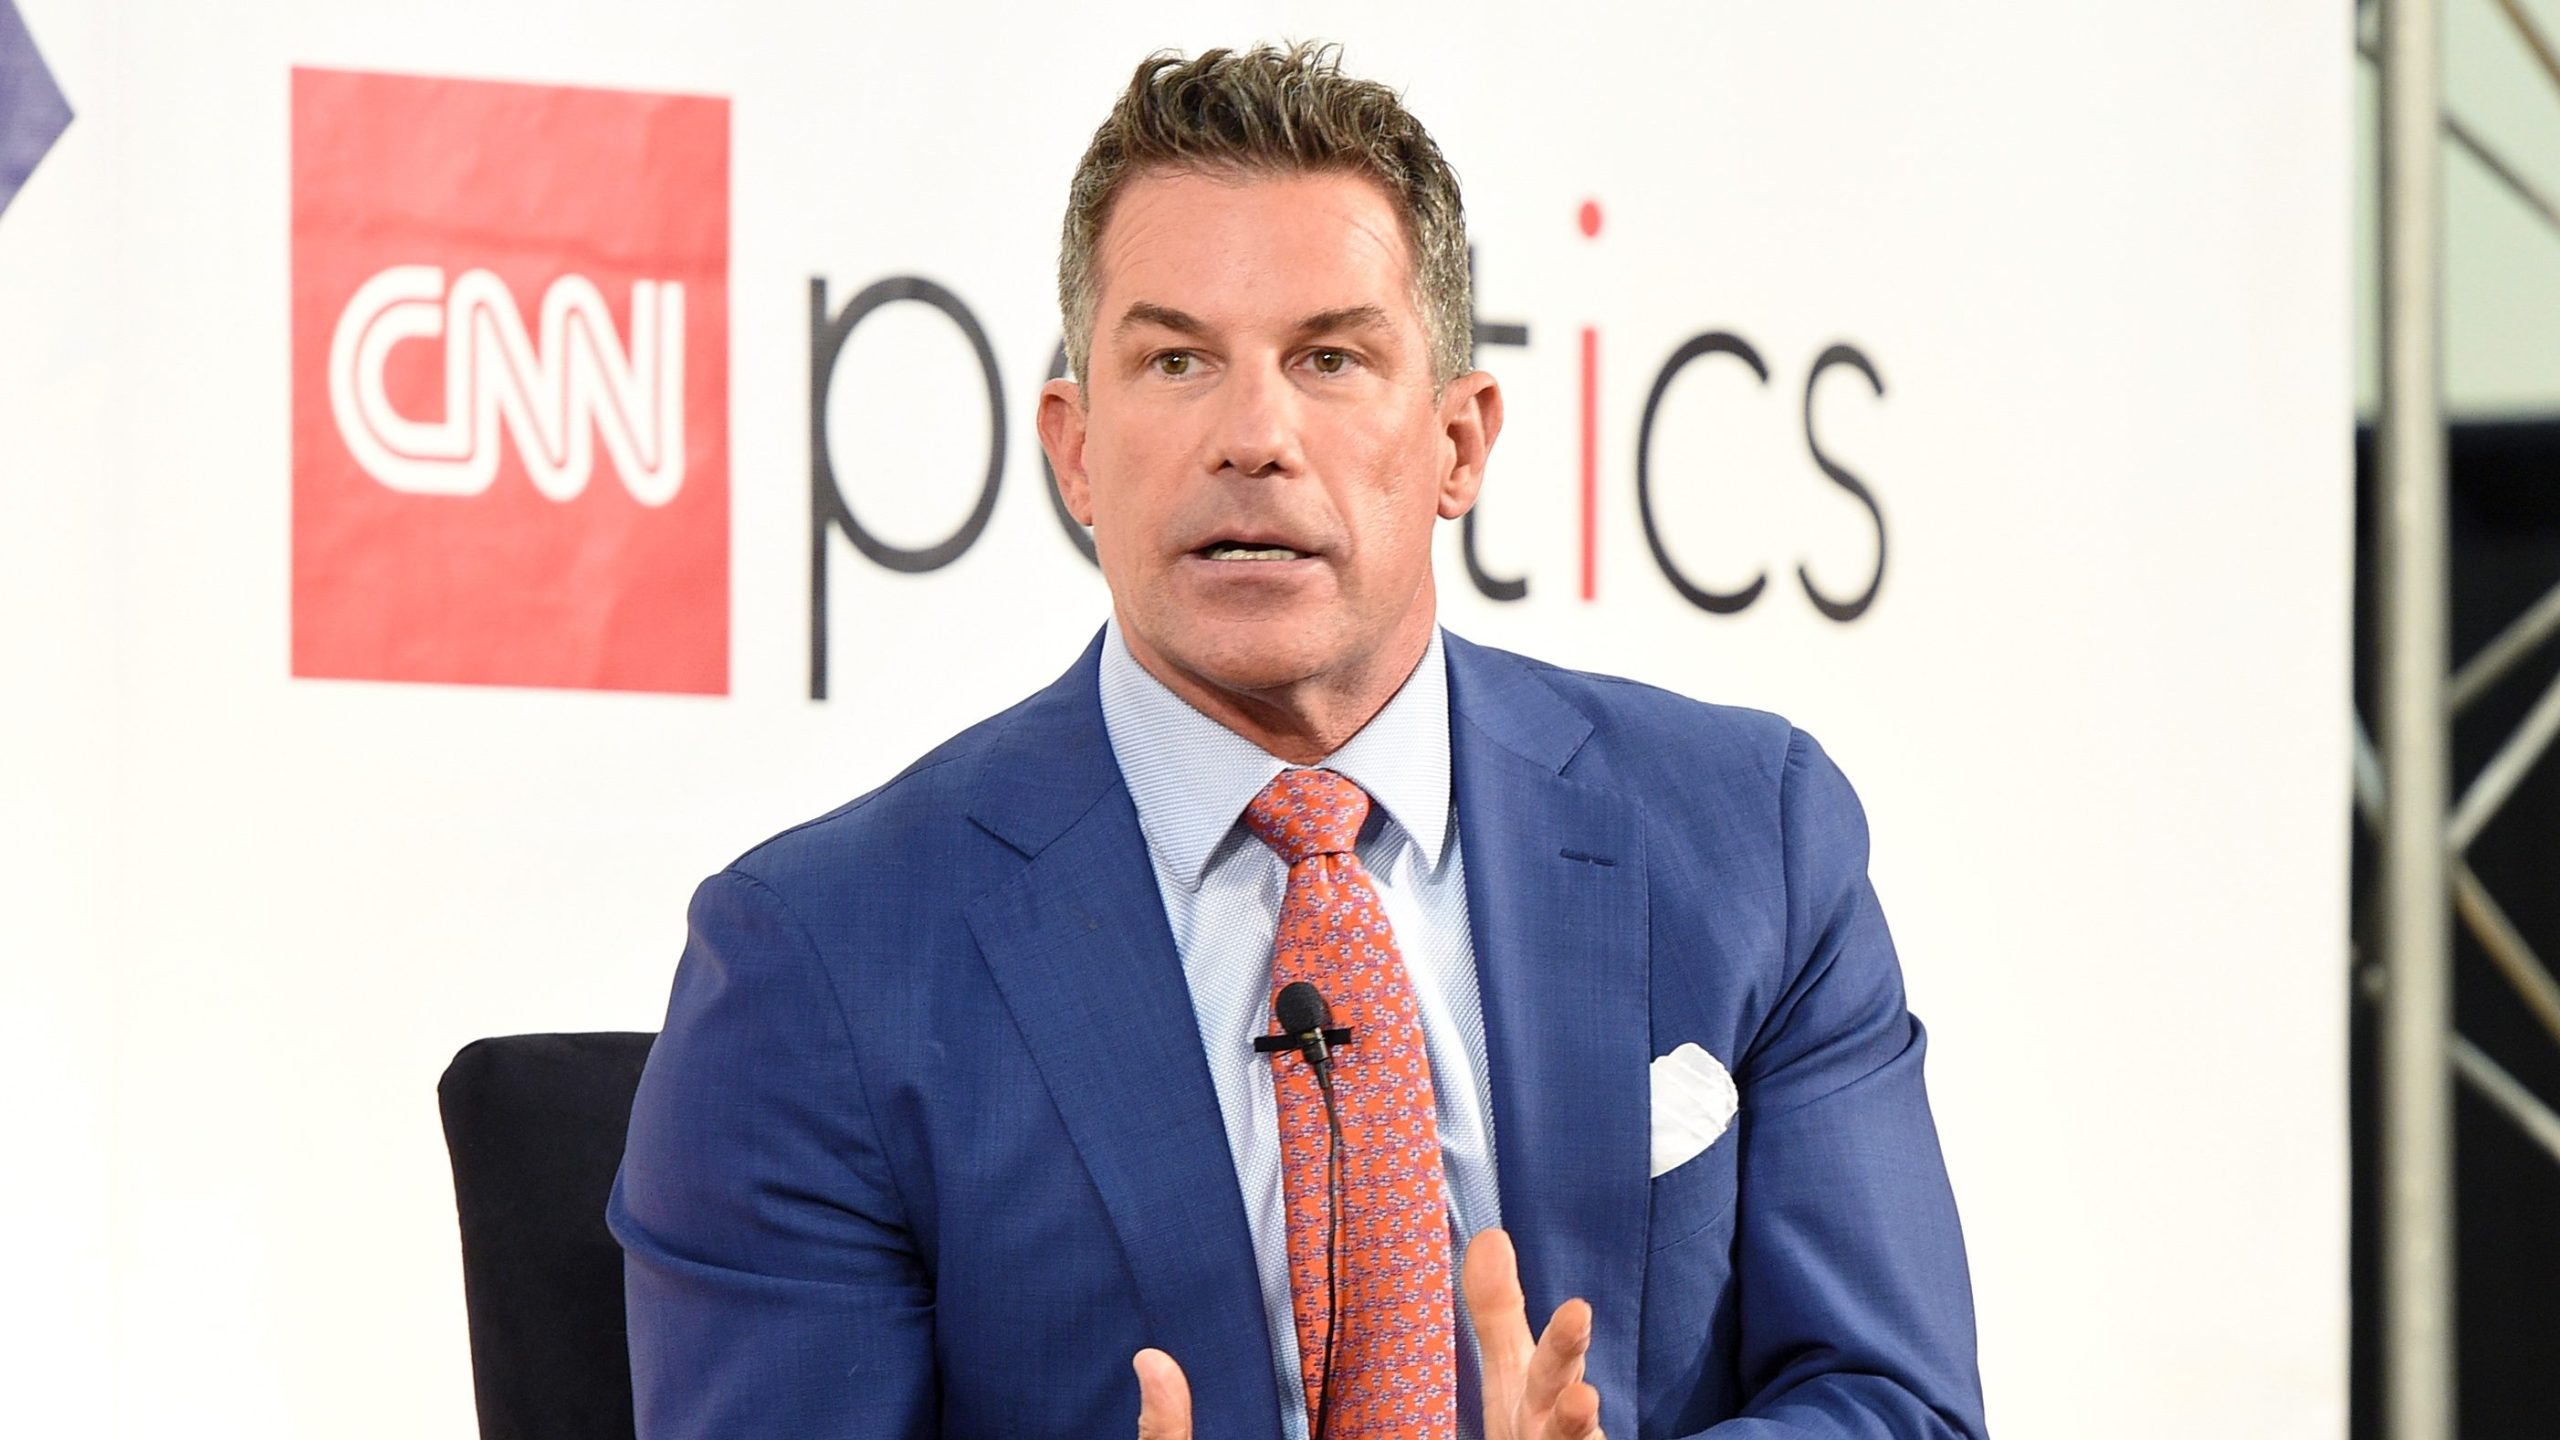 Jeremy Bernard participates at a CNN politics panel during Politicon at the Pasadena Convention Center on July 29, 2017. (Joshua Blanchard / Getty Images)